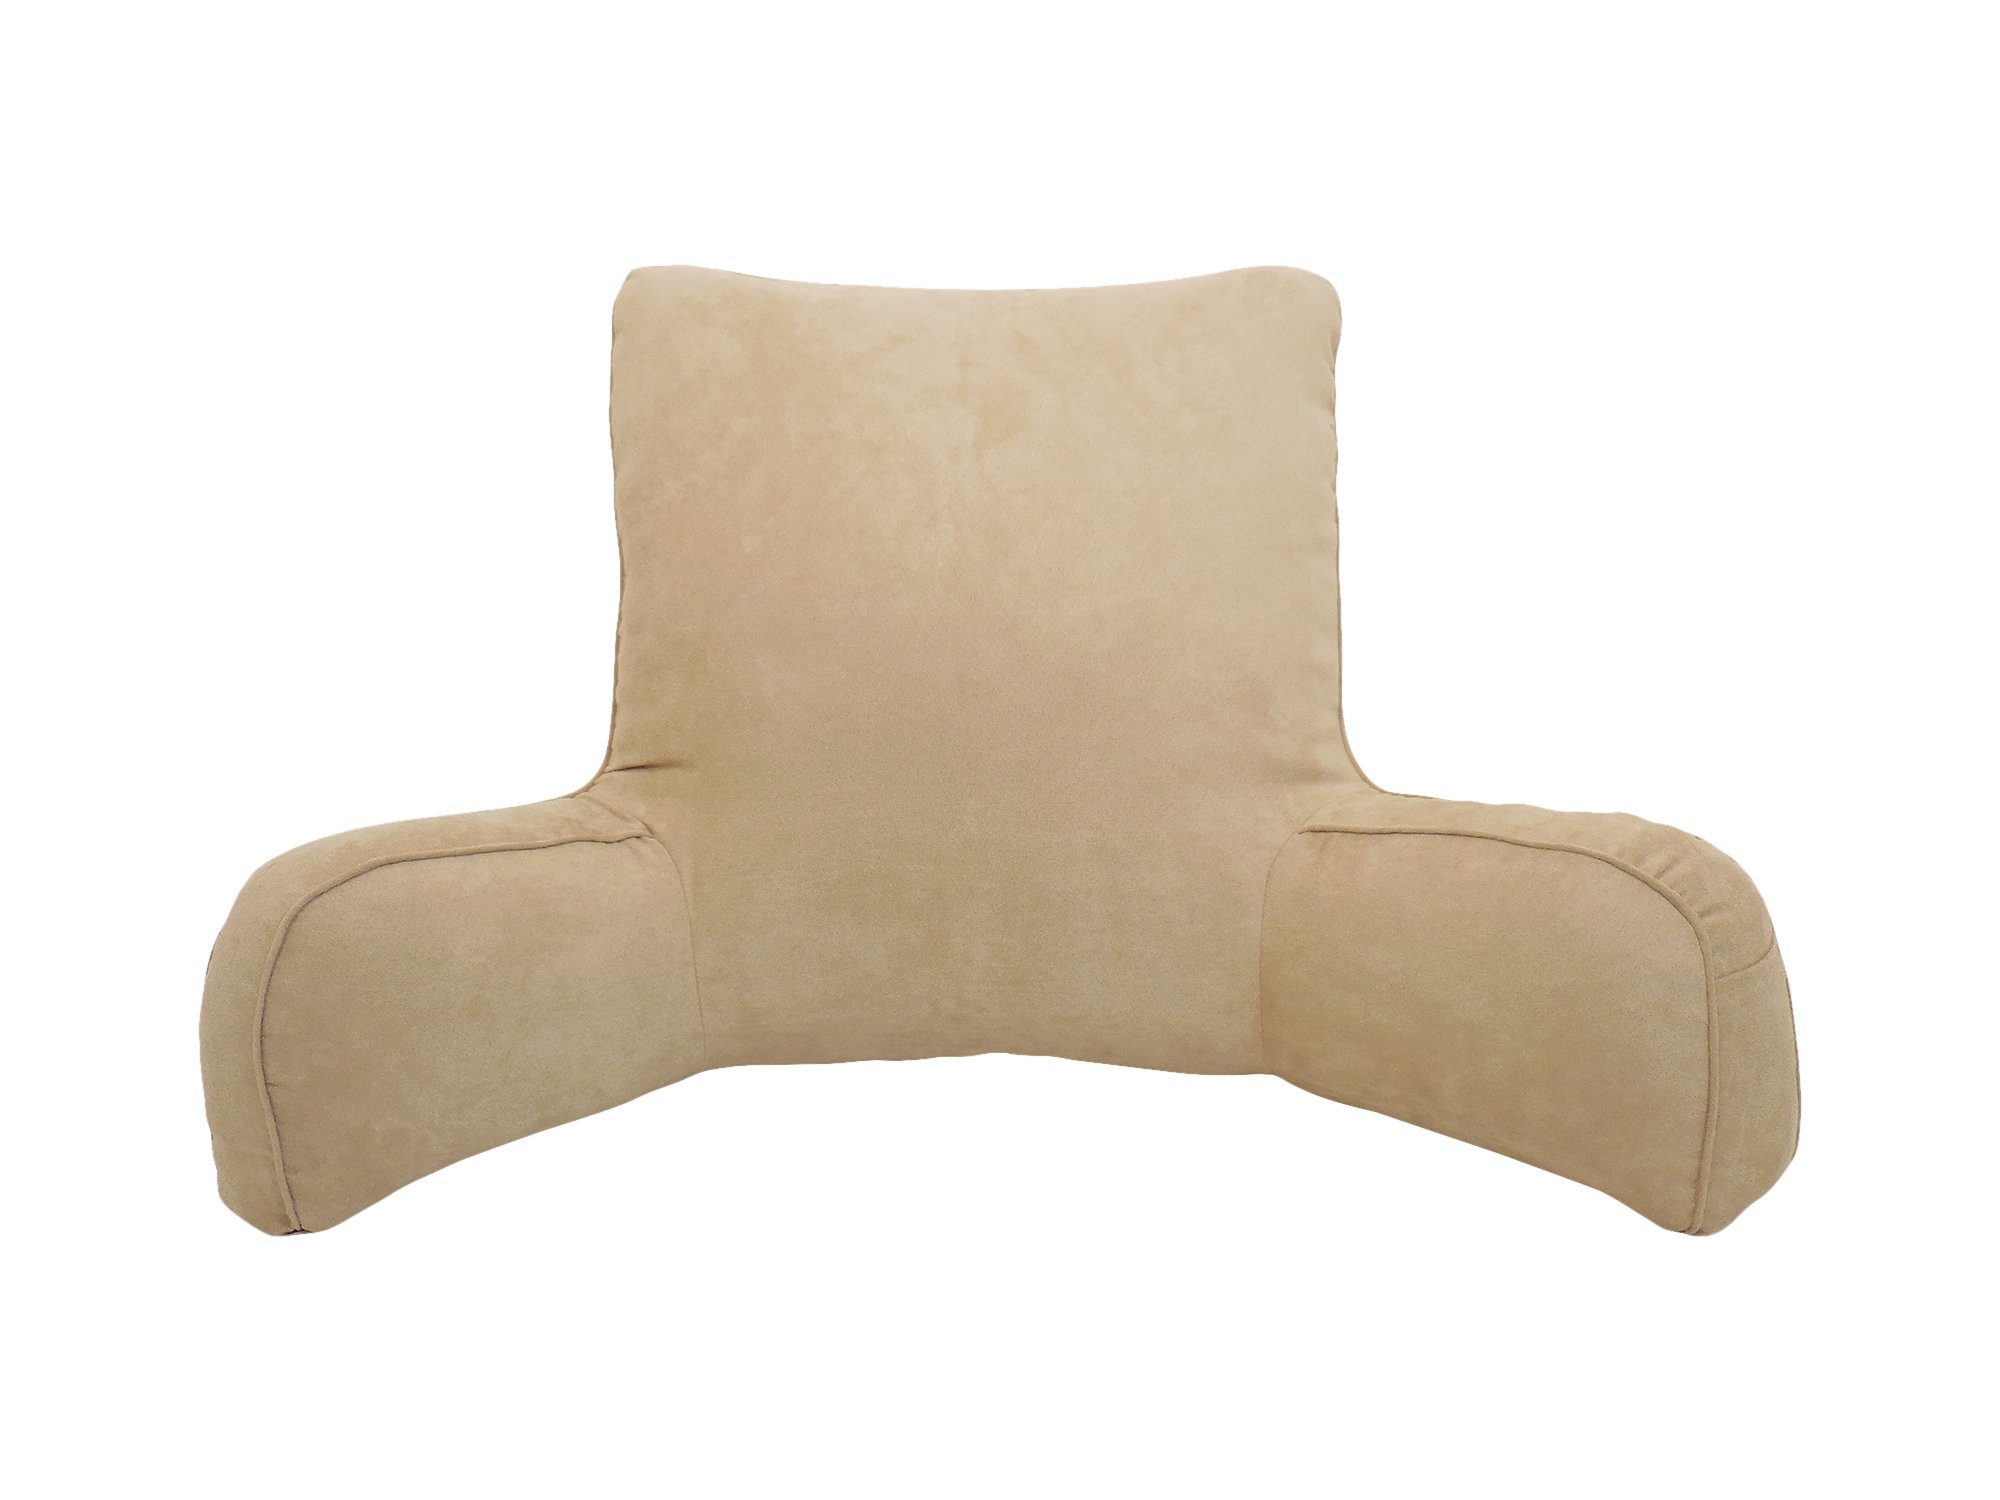 Arlee Suede Oversized Bedrest Lounger, Brush